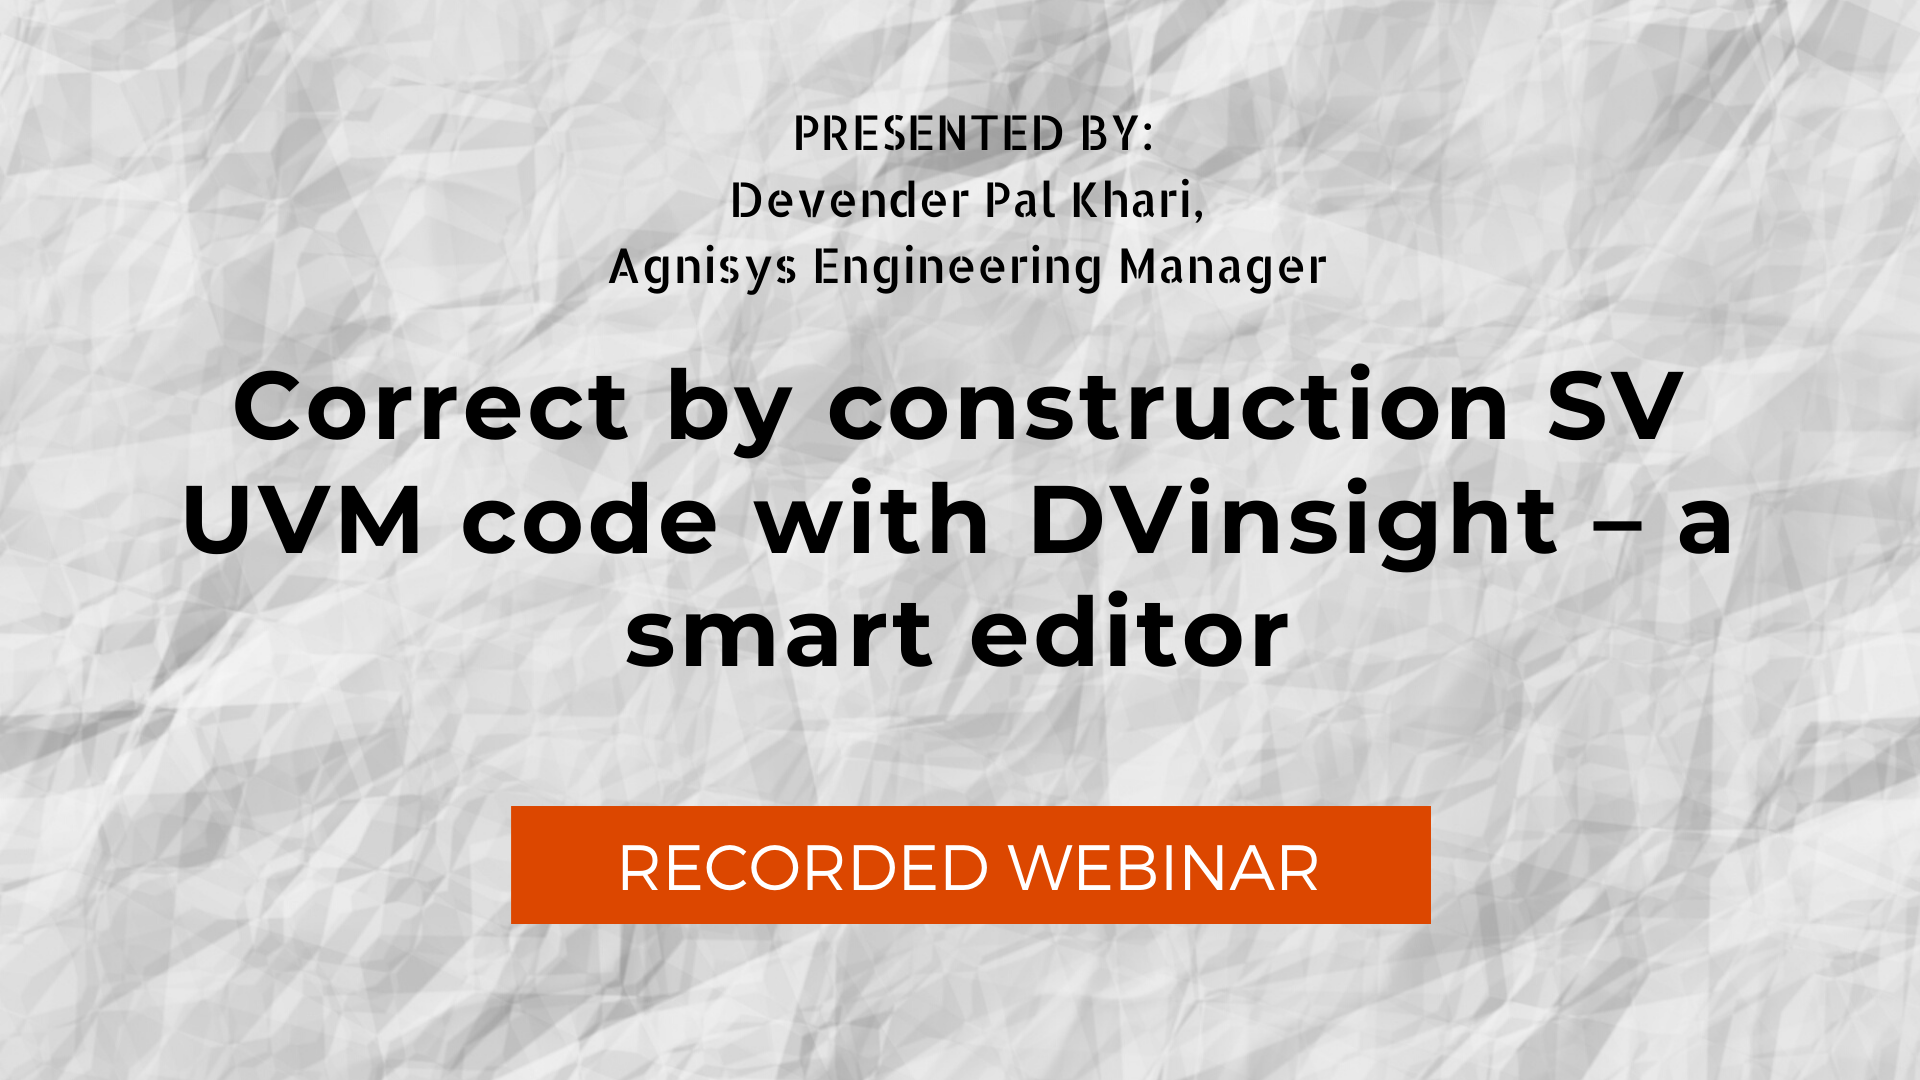 Correct by construction SV UVM code with DVinsight - a smart editor